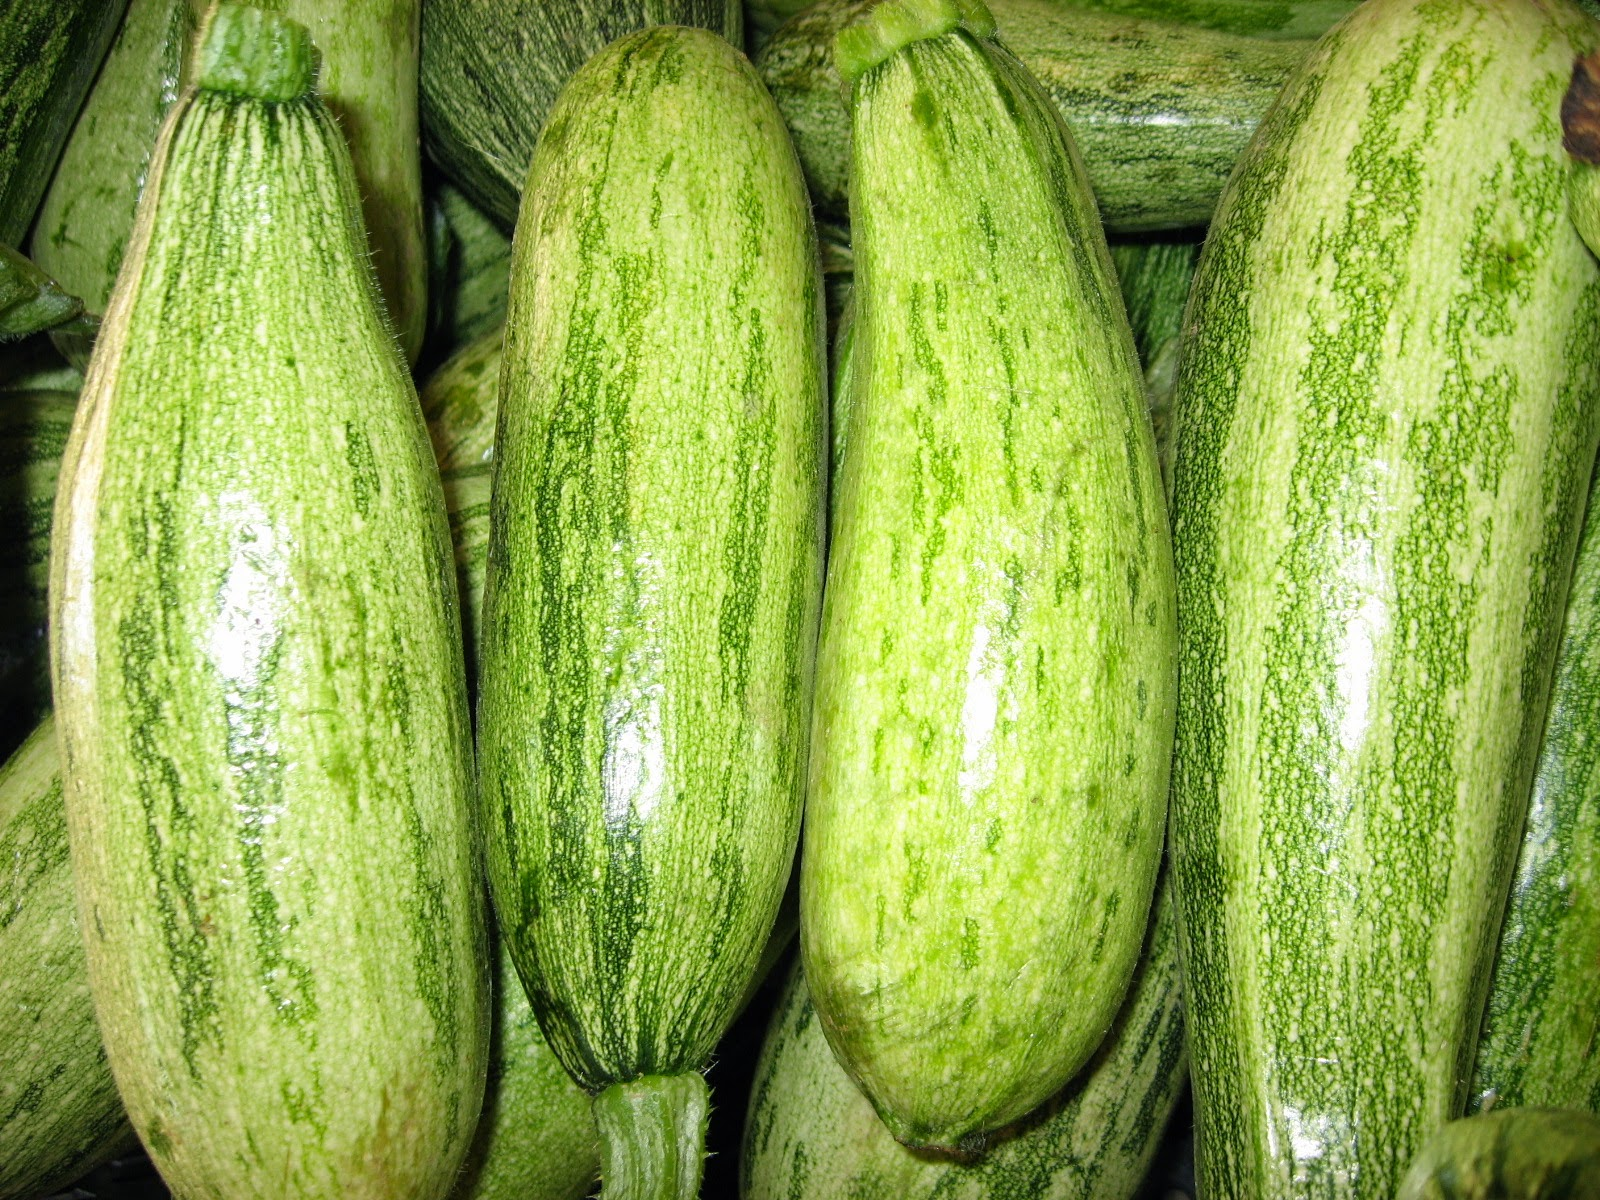 Yet another variety of squash being offered